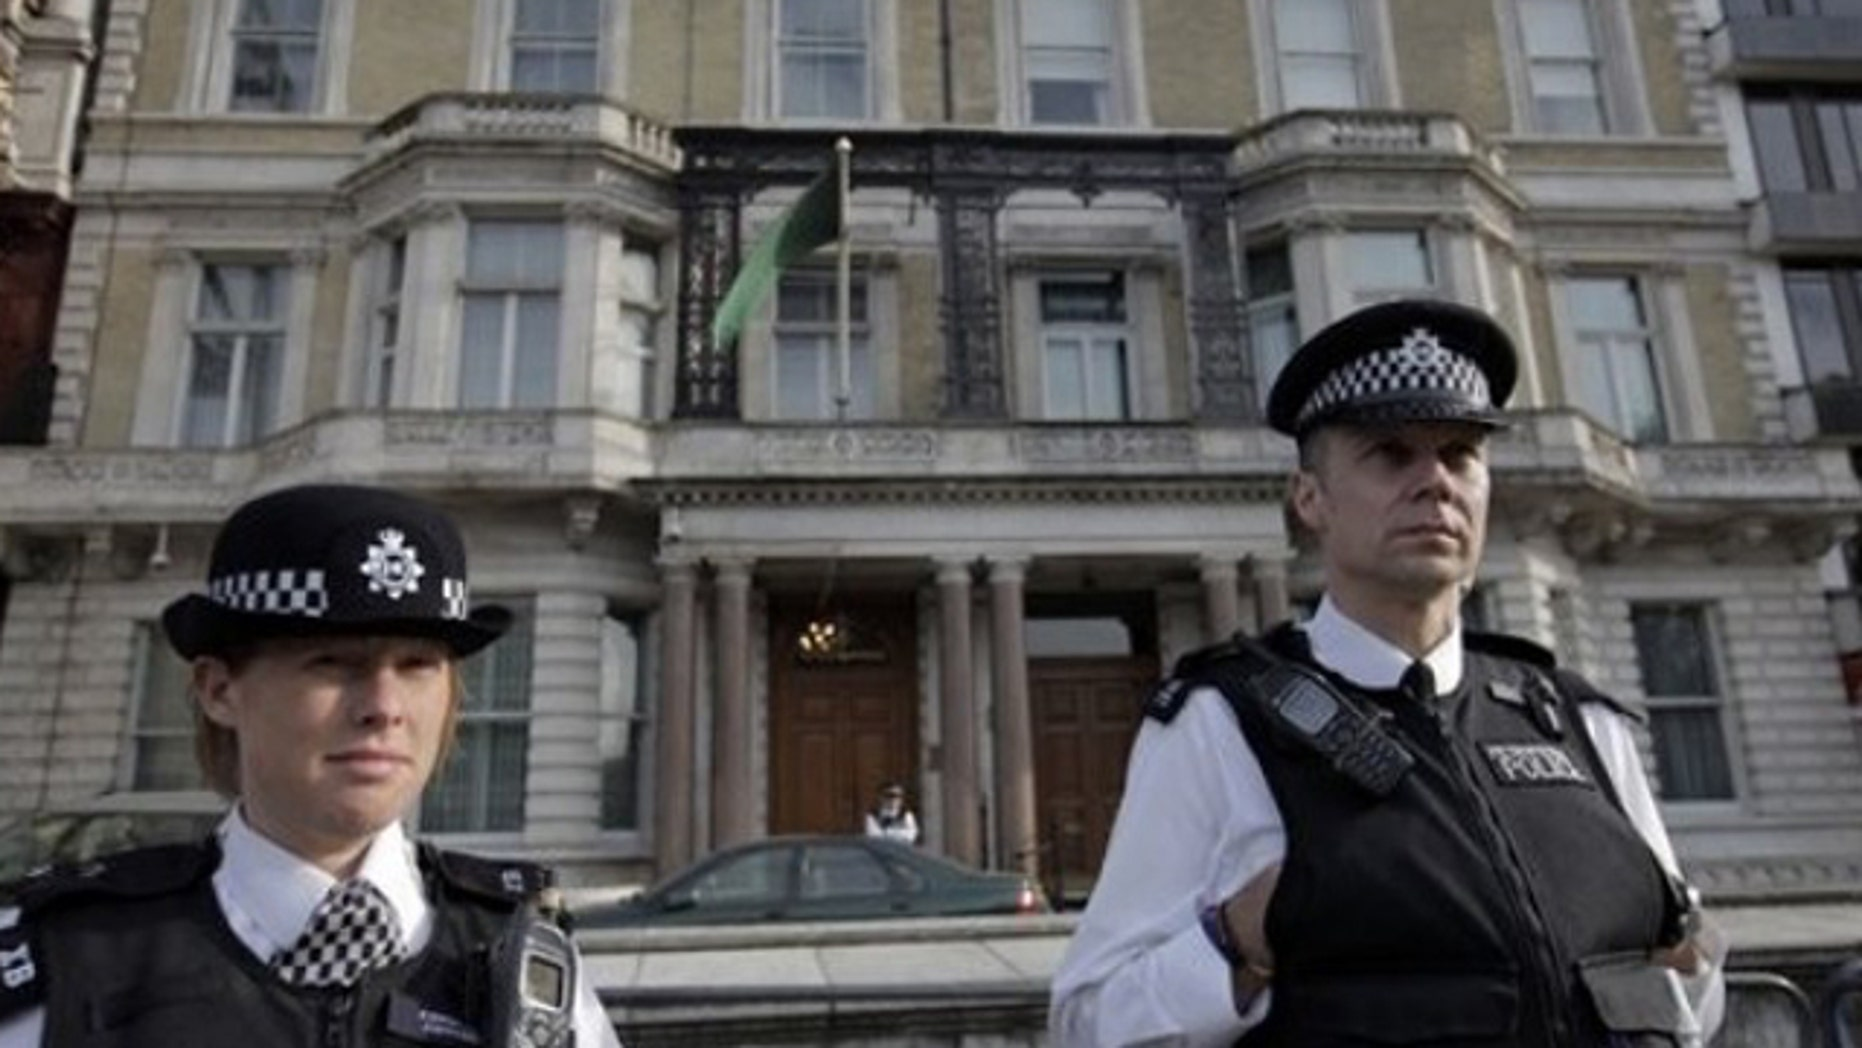 May 1: British police officers guard Libya's embassy in London